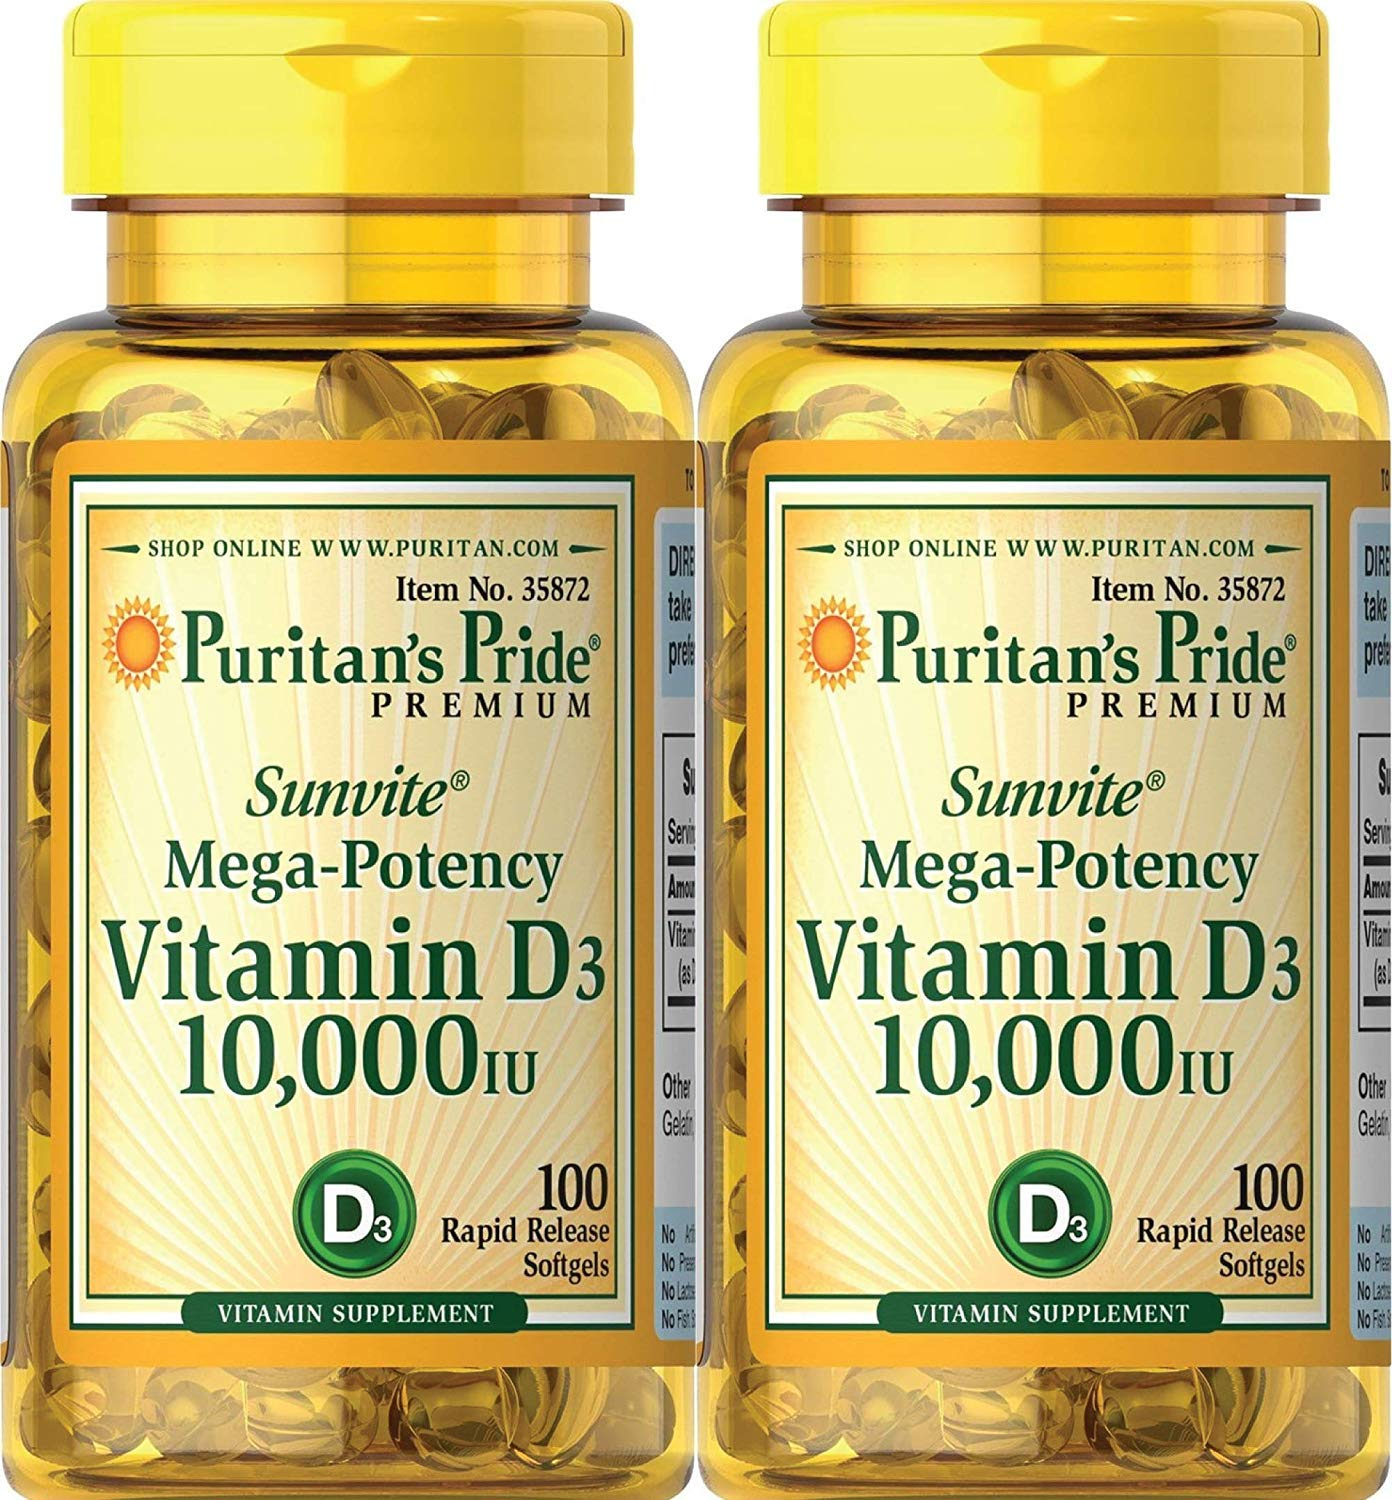 Puritans Pride Vitamin D3 10,000 IU, 100 Count (2 Pack)